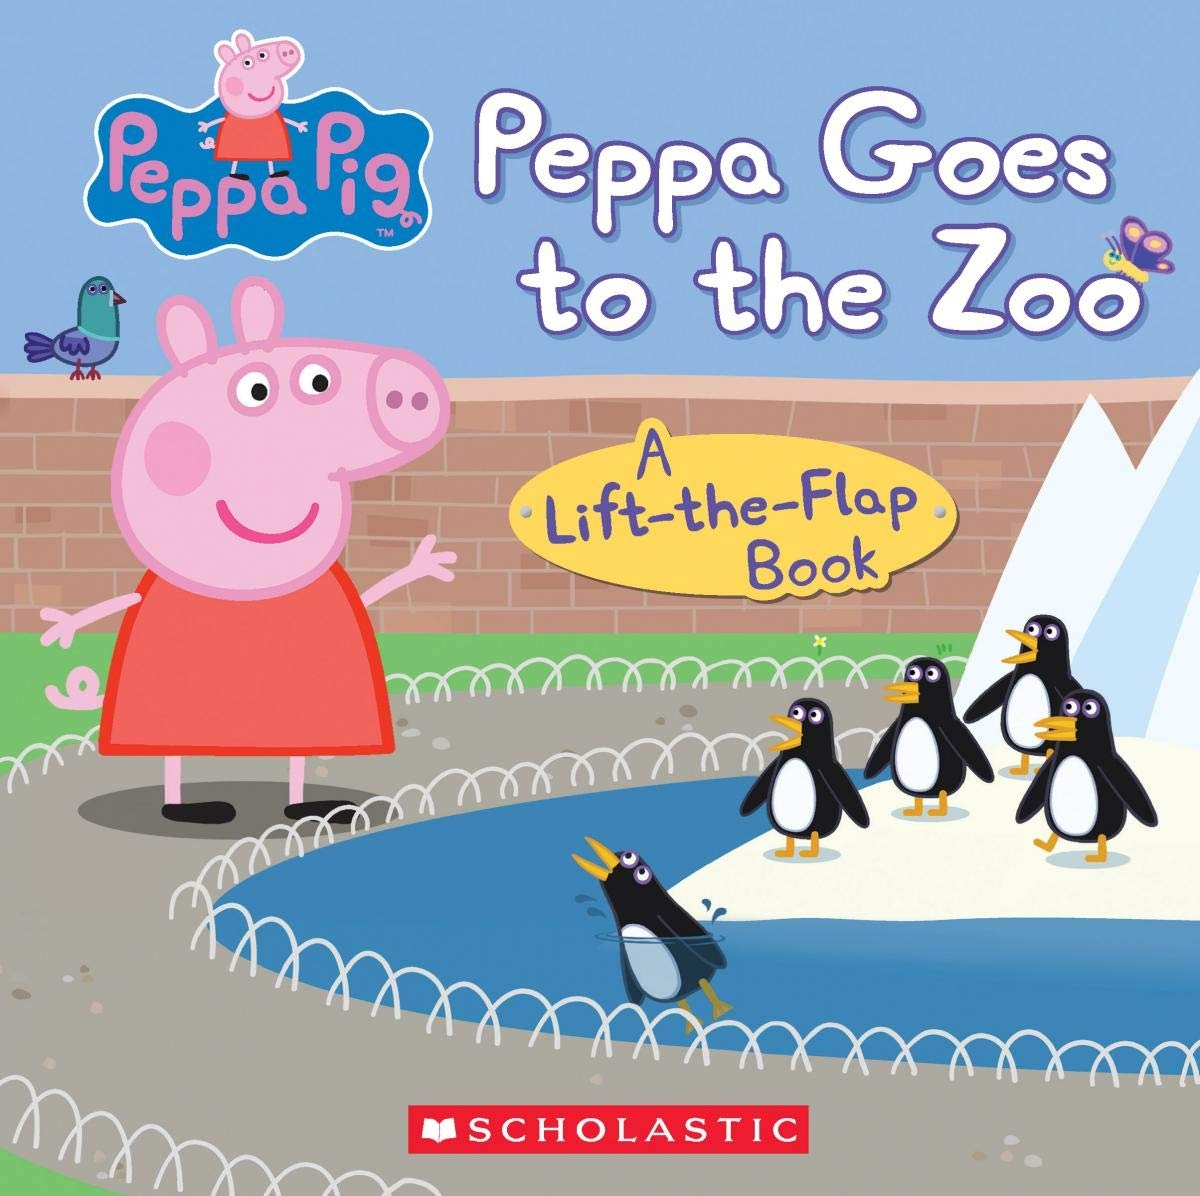 PEPPA GOES TO THE ZOO